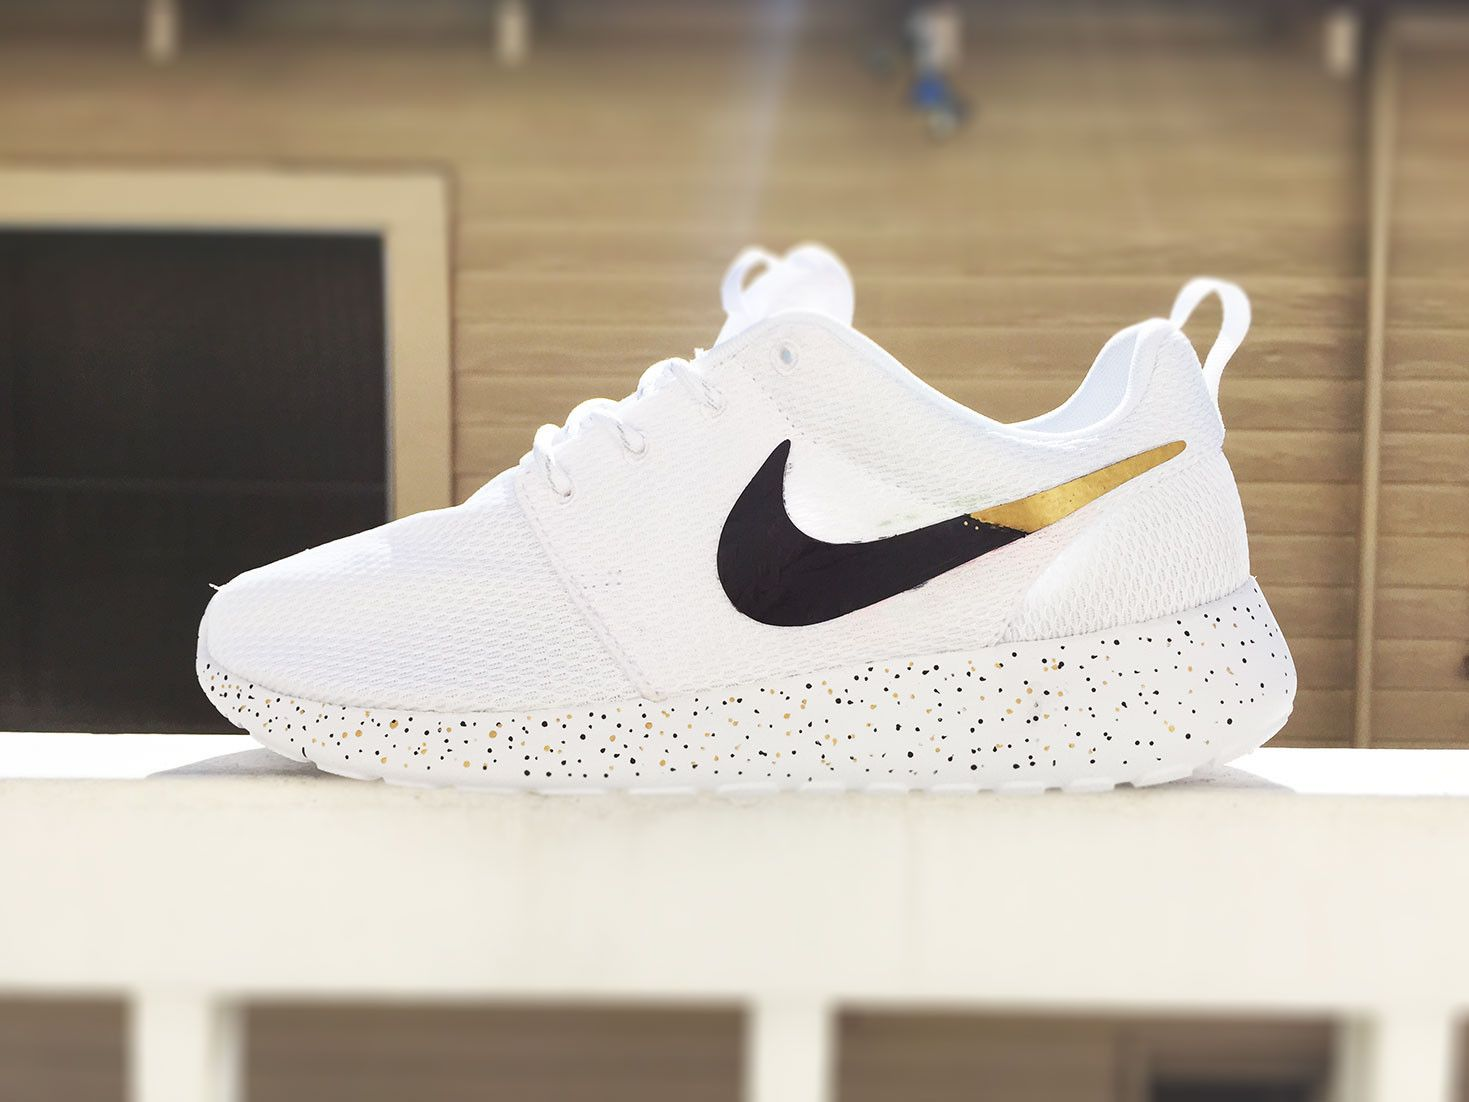 huge discount 57da3 64308 Custom Nike Roshe Run sneakers for women, All white, Black and Gold,  Silver, specles, gold flakes, love, fashionable design